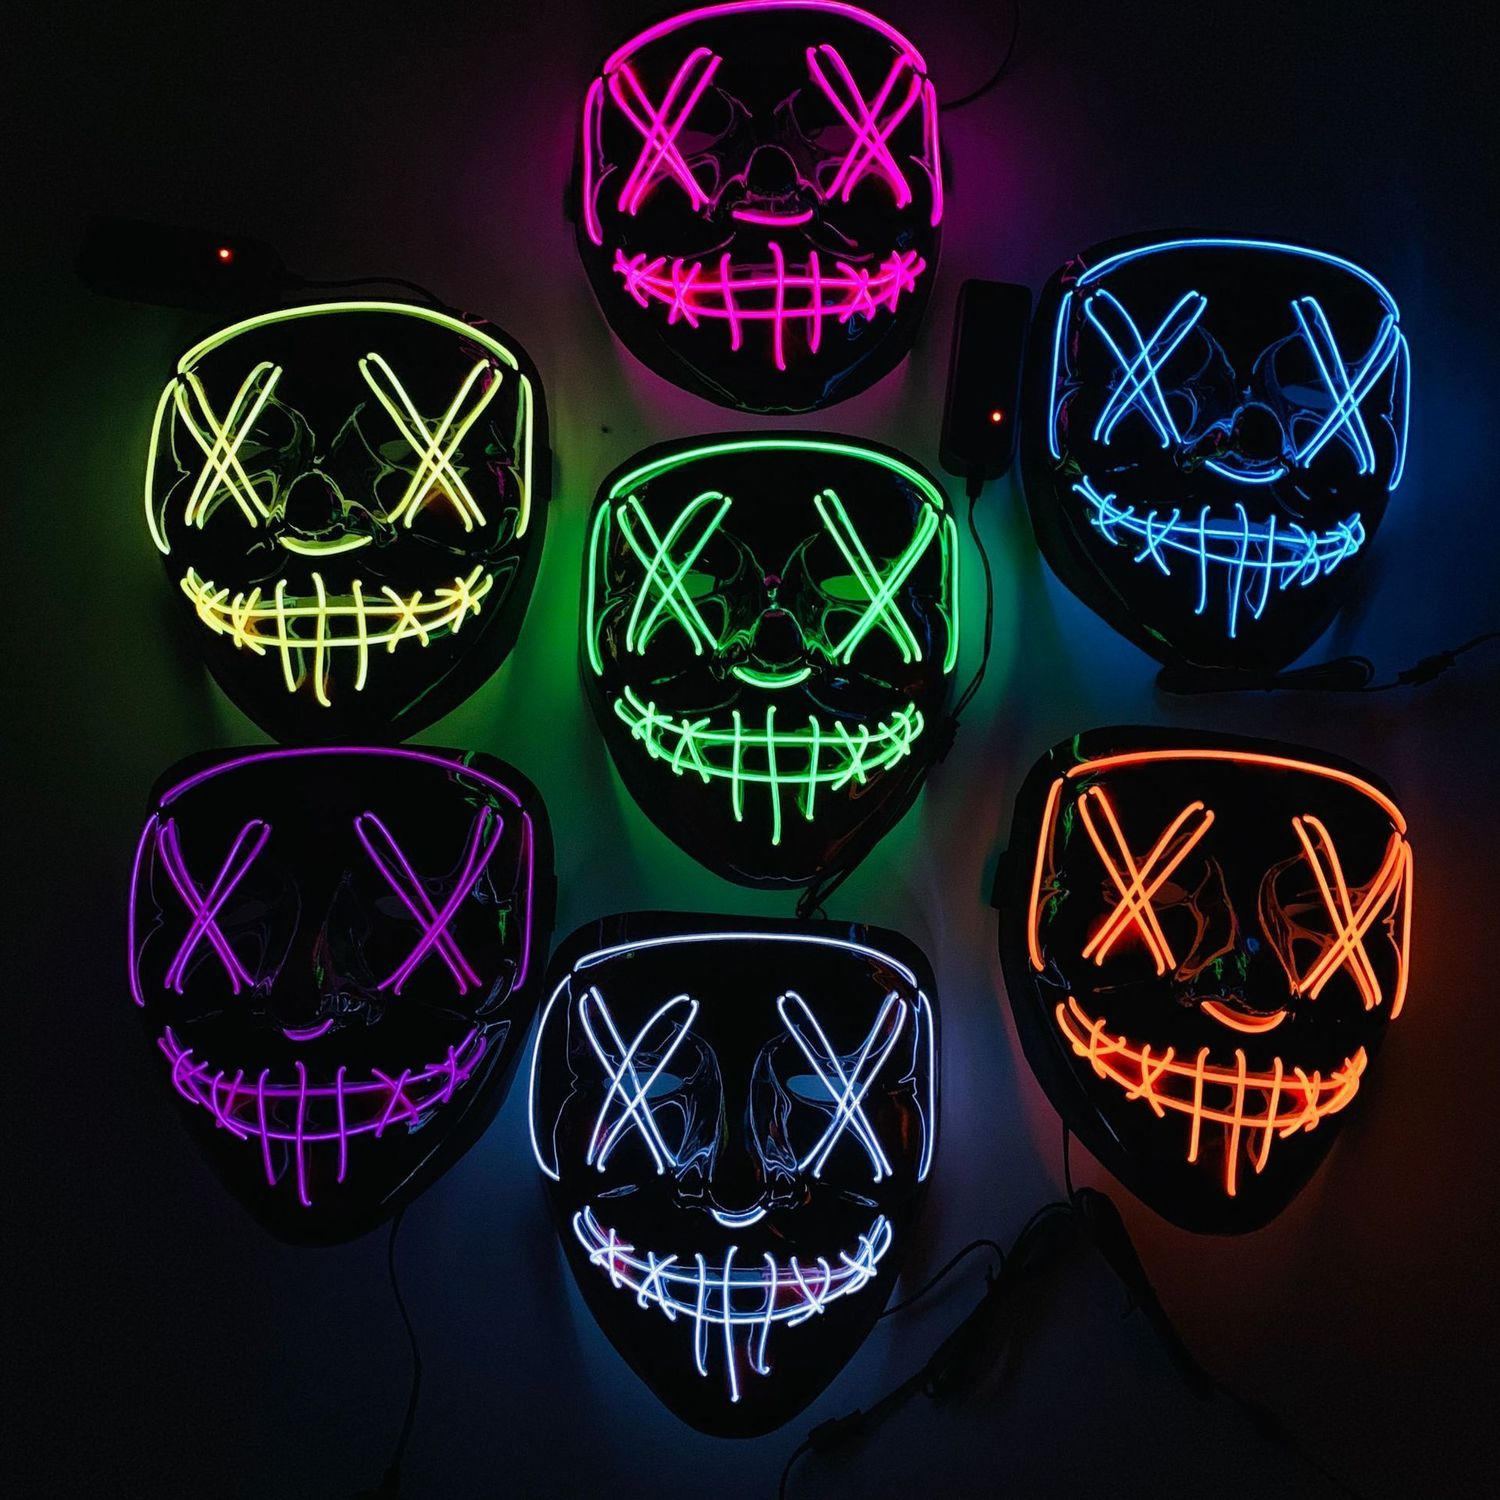 Halloween Mask LED Light Up Party Masks The Purge Election Year Great Funny Masks Festival Cosplay Supplies Costume Glow In Dark